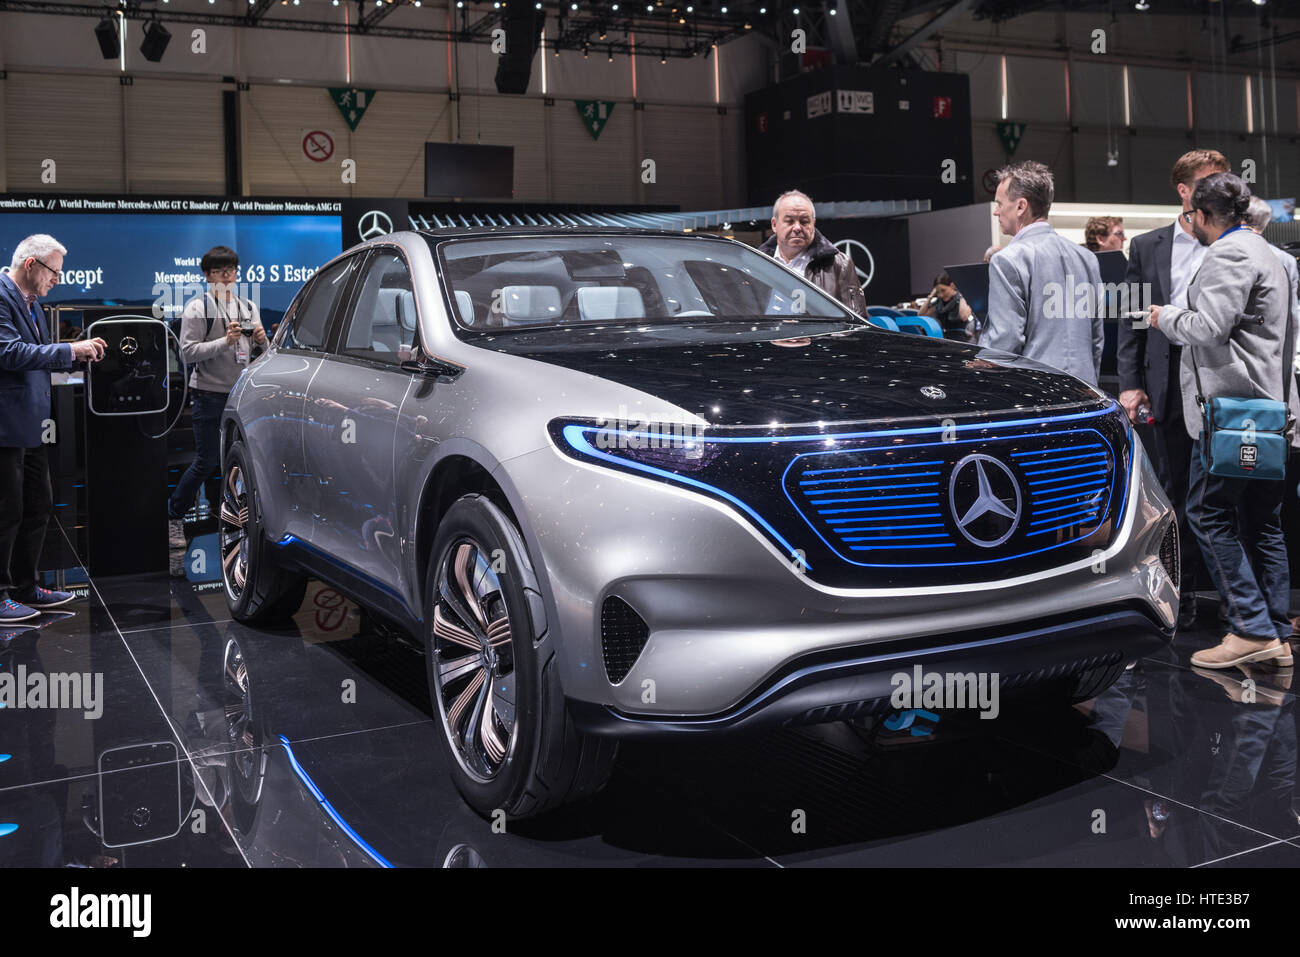 A Mercedes Benz electric concept car at the Geneva, Switzeroland car show. Stock Photo